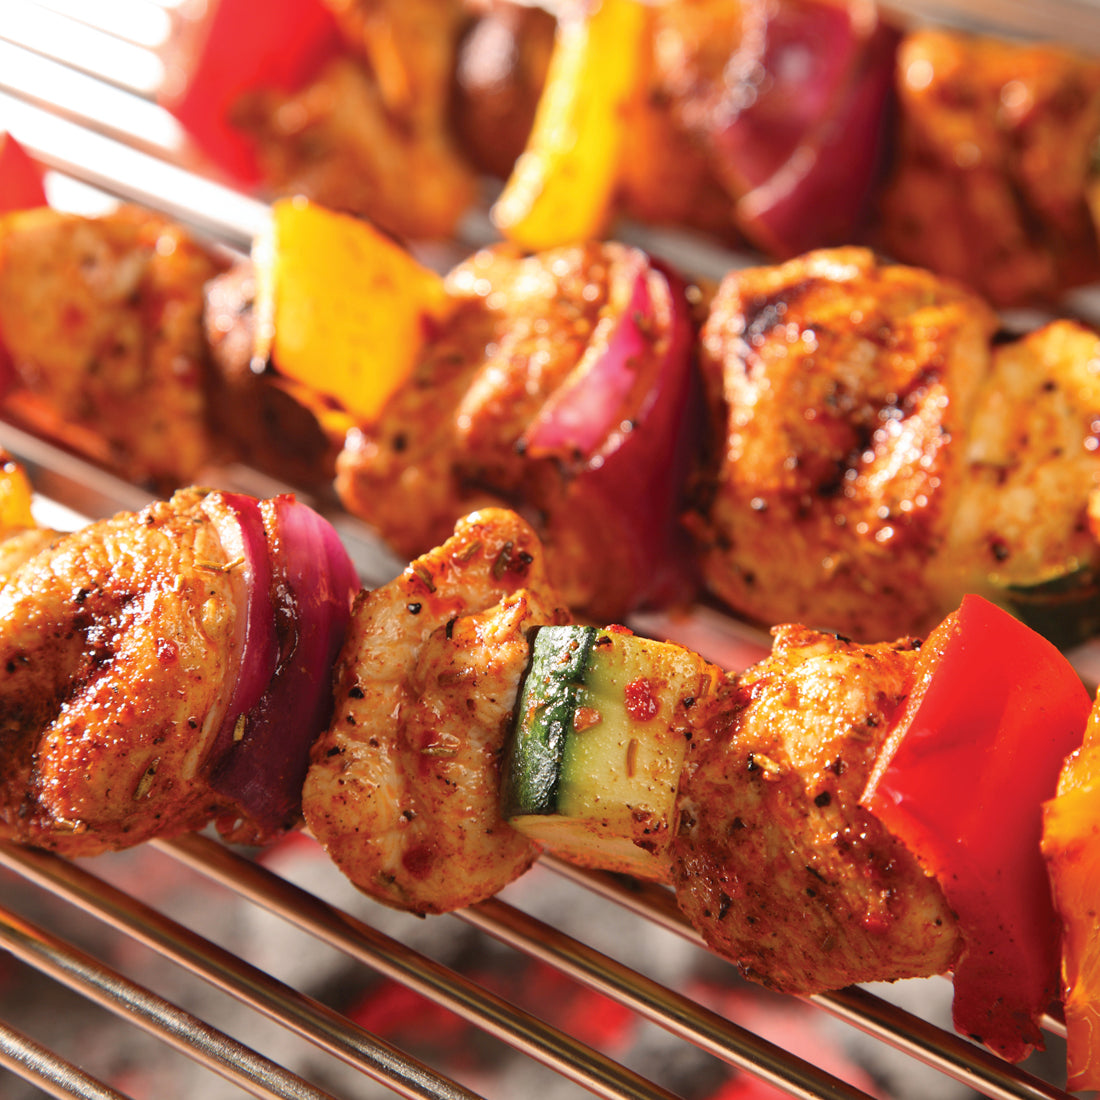 Jamaican Jerk Marinade shown on chicken and vegetable kabobs.